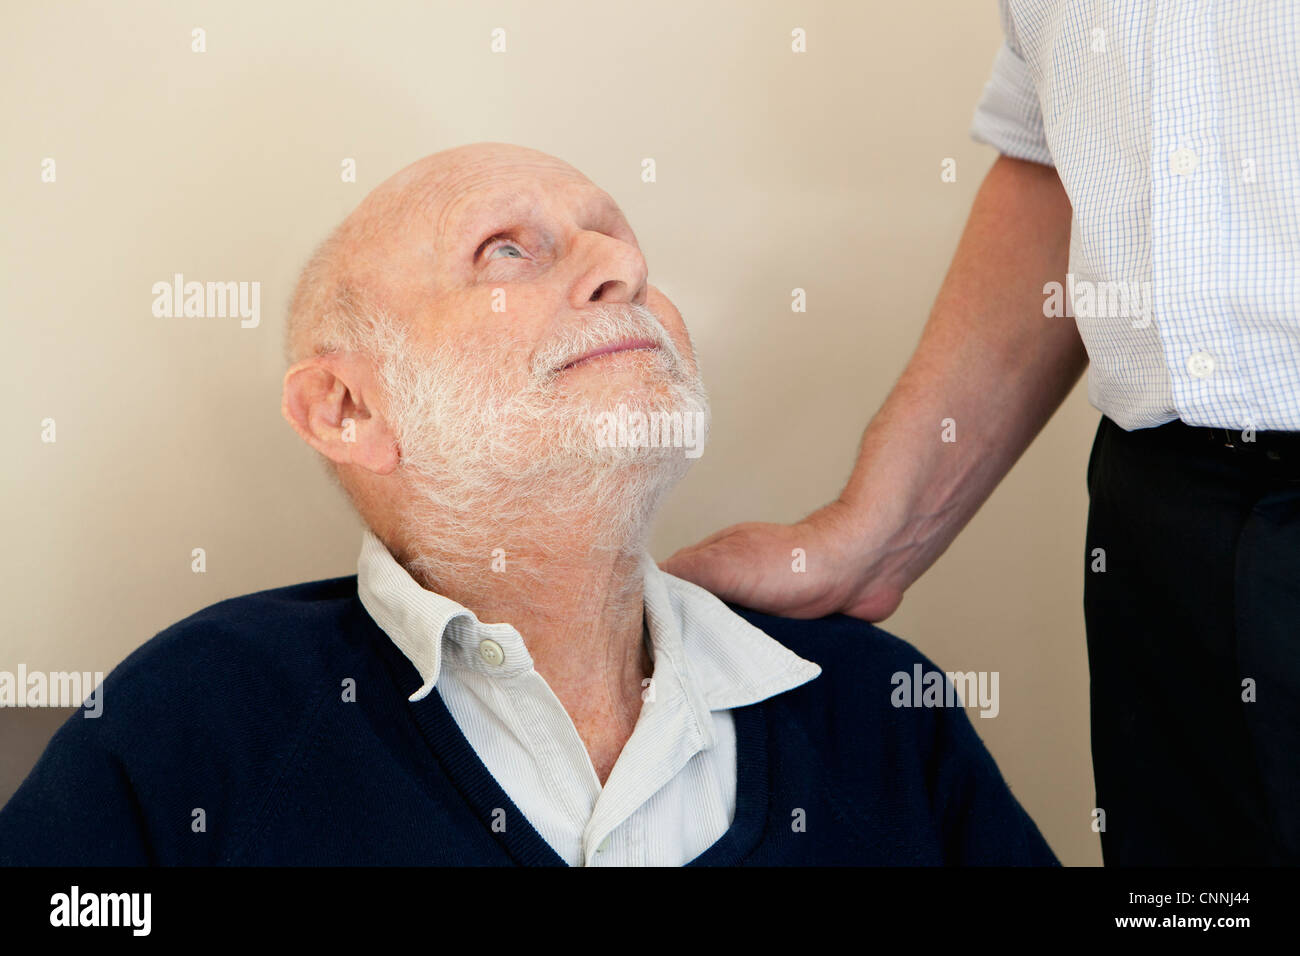 Son patting father's shoulder - Stock Image